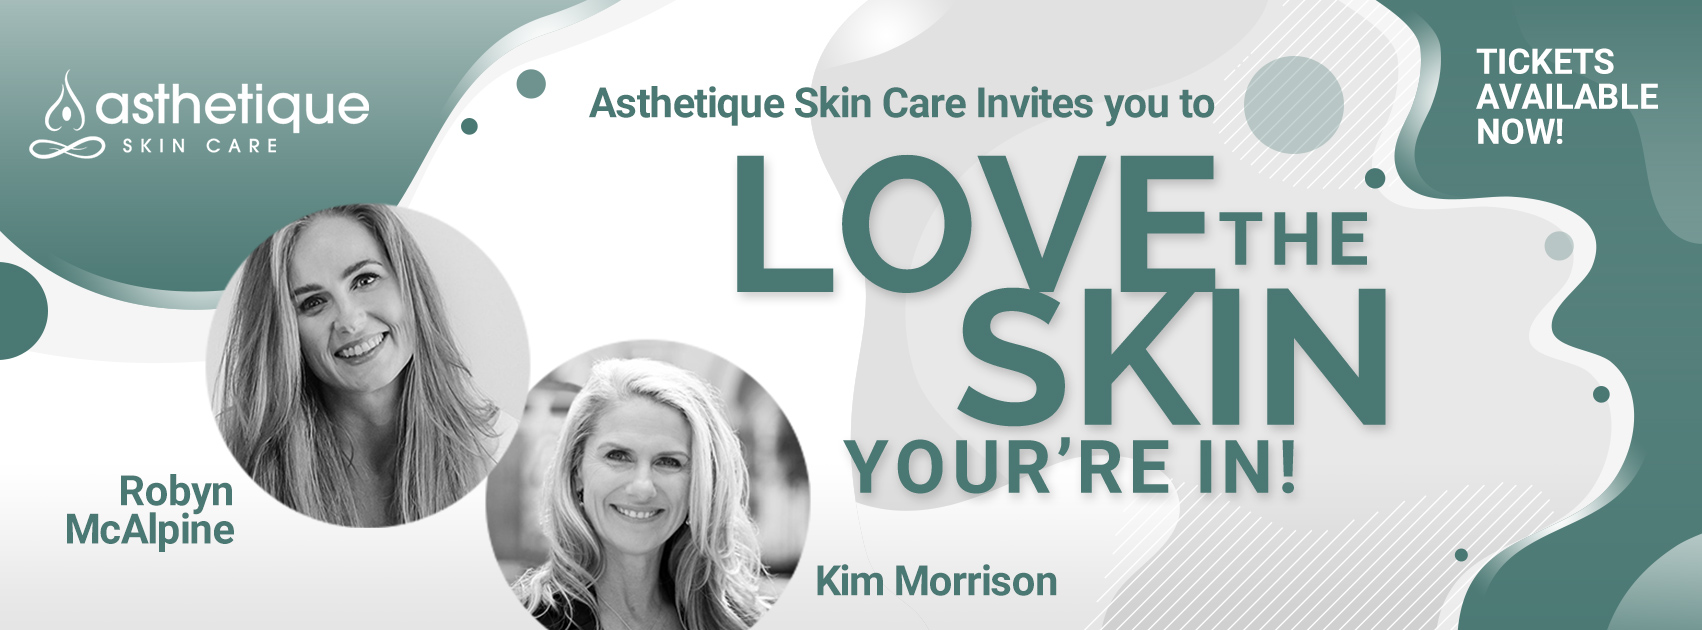 Asthetique-EVENT-BANNER-Love-the-Skin-Youre-In.jpg